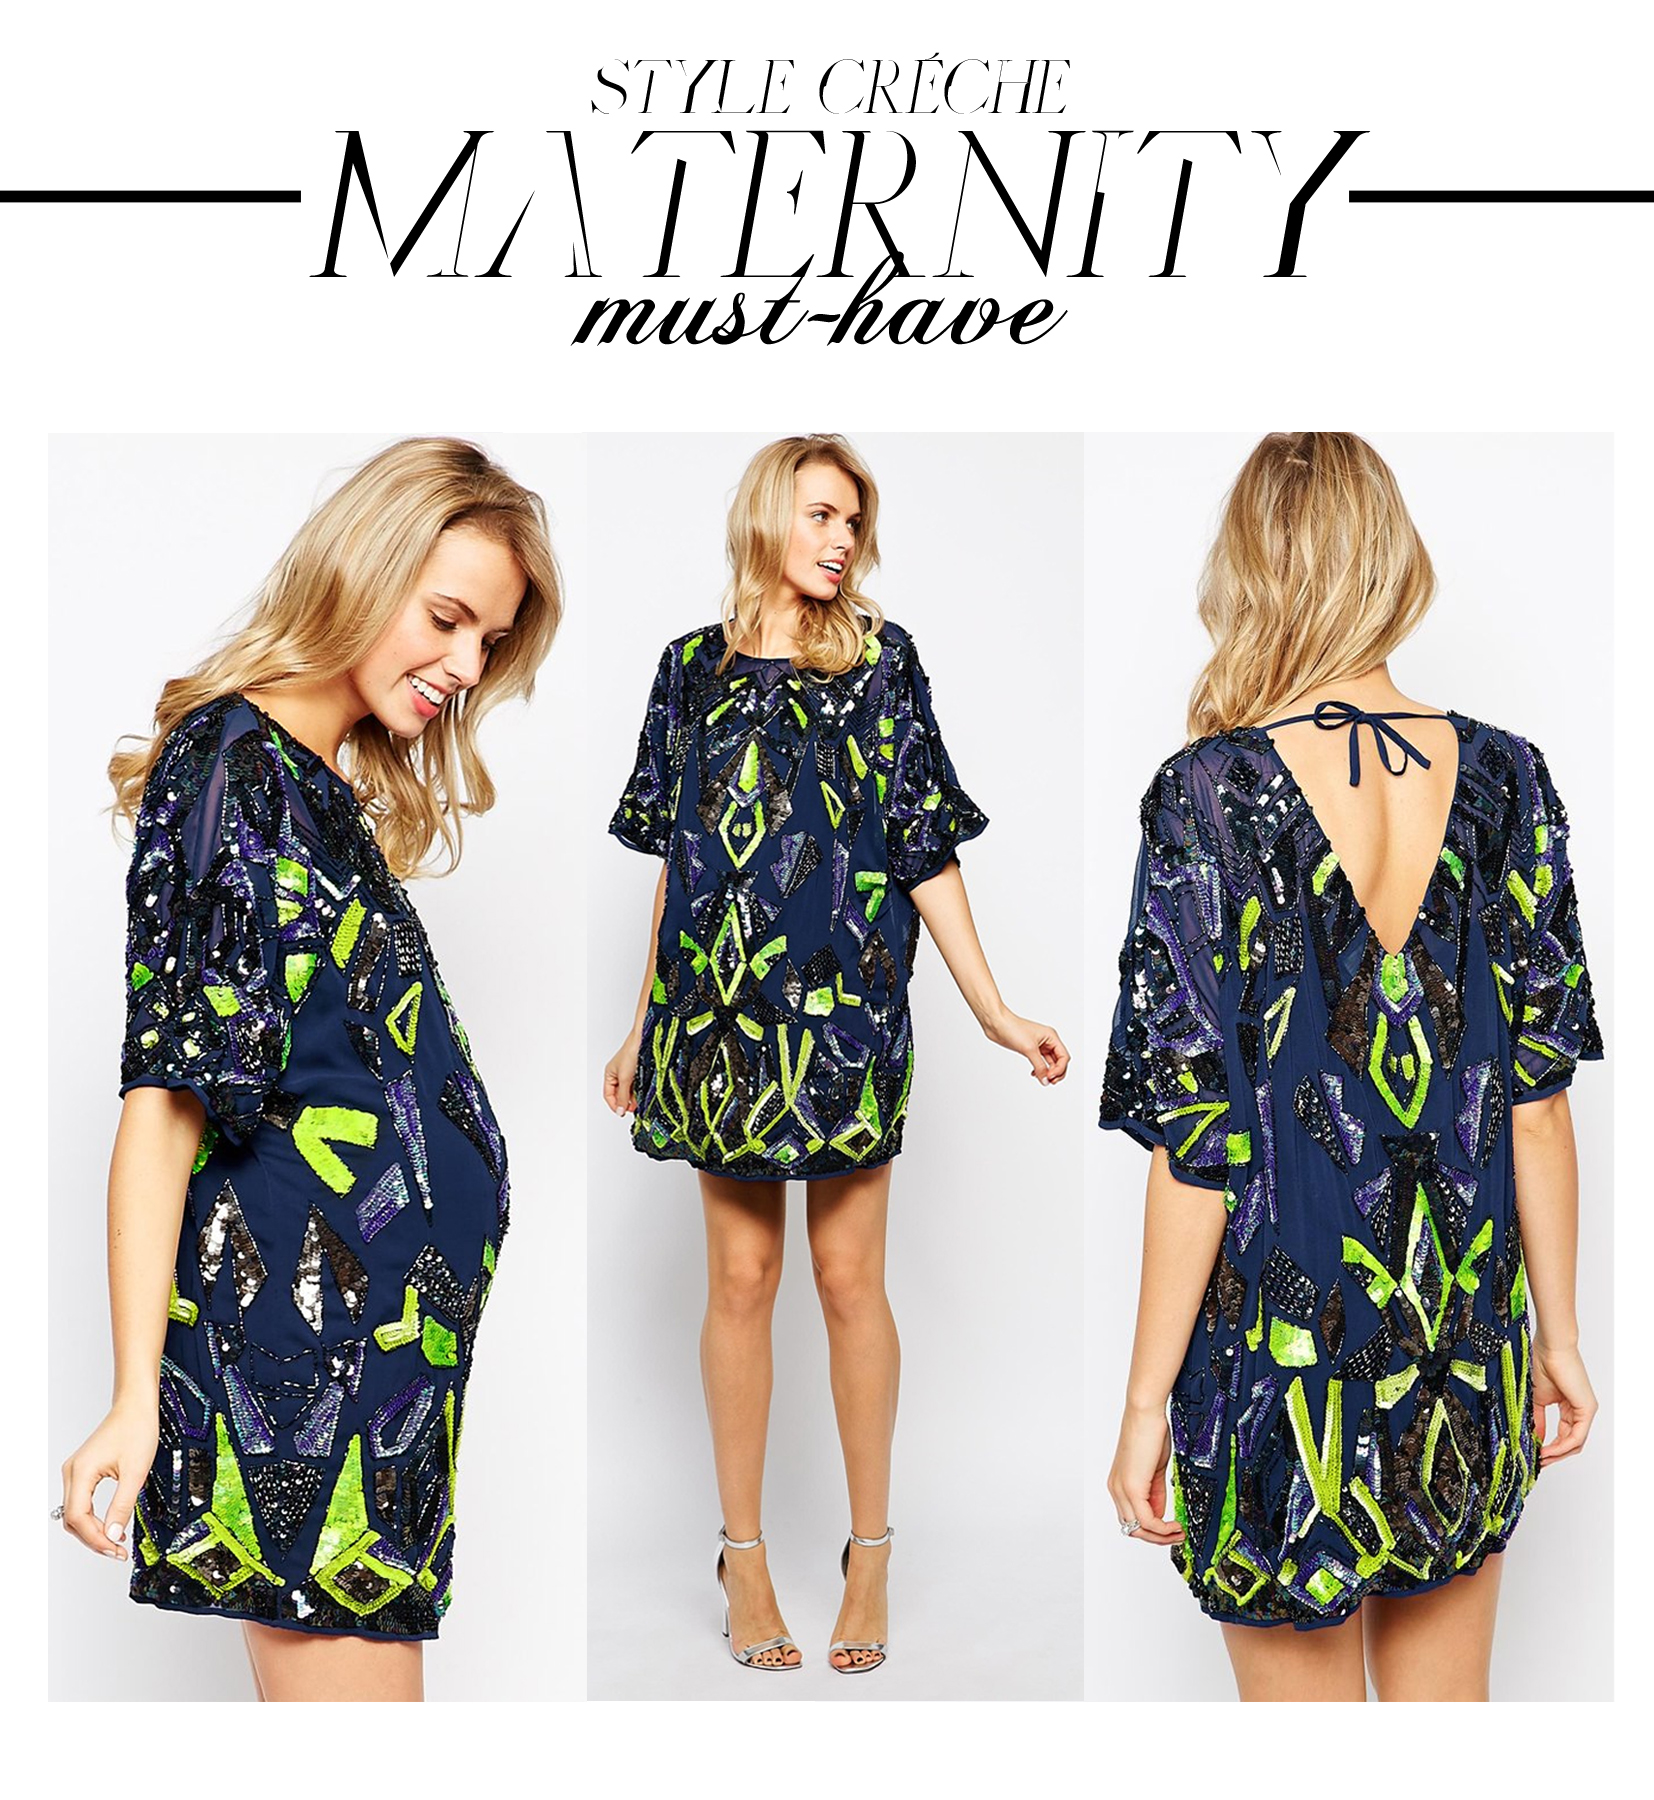 Maternity must have new years eve sparkle style creche maternity must have asos sequin aztec ombrellifo Choice Image